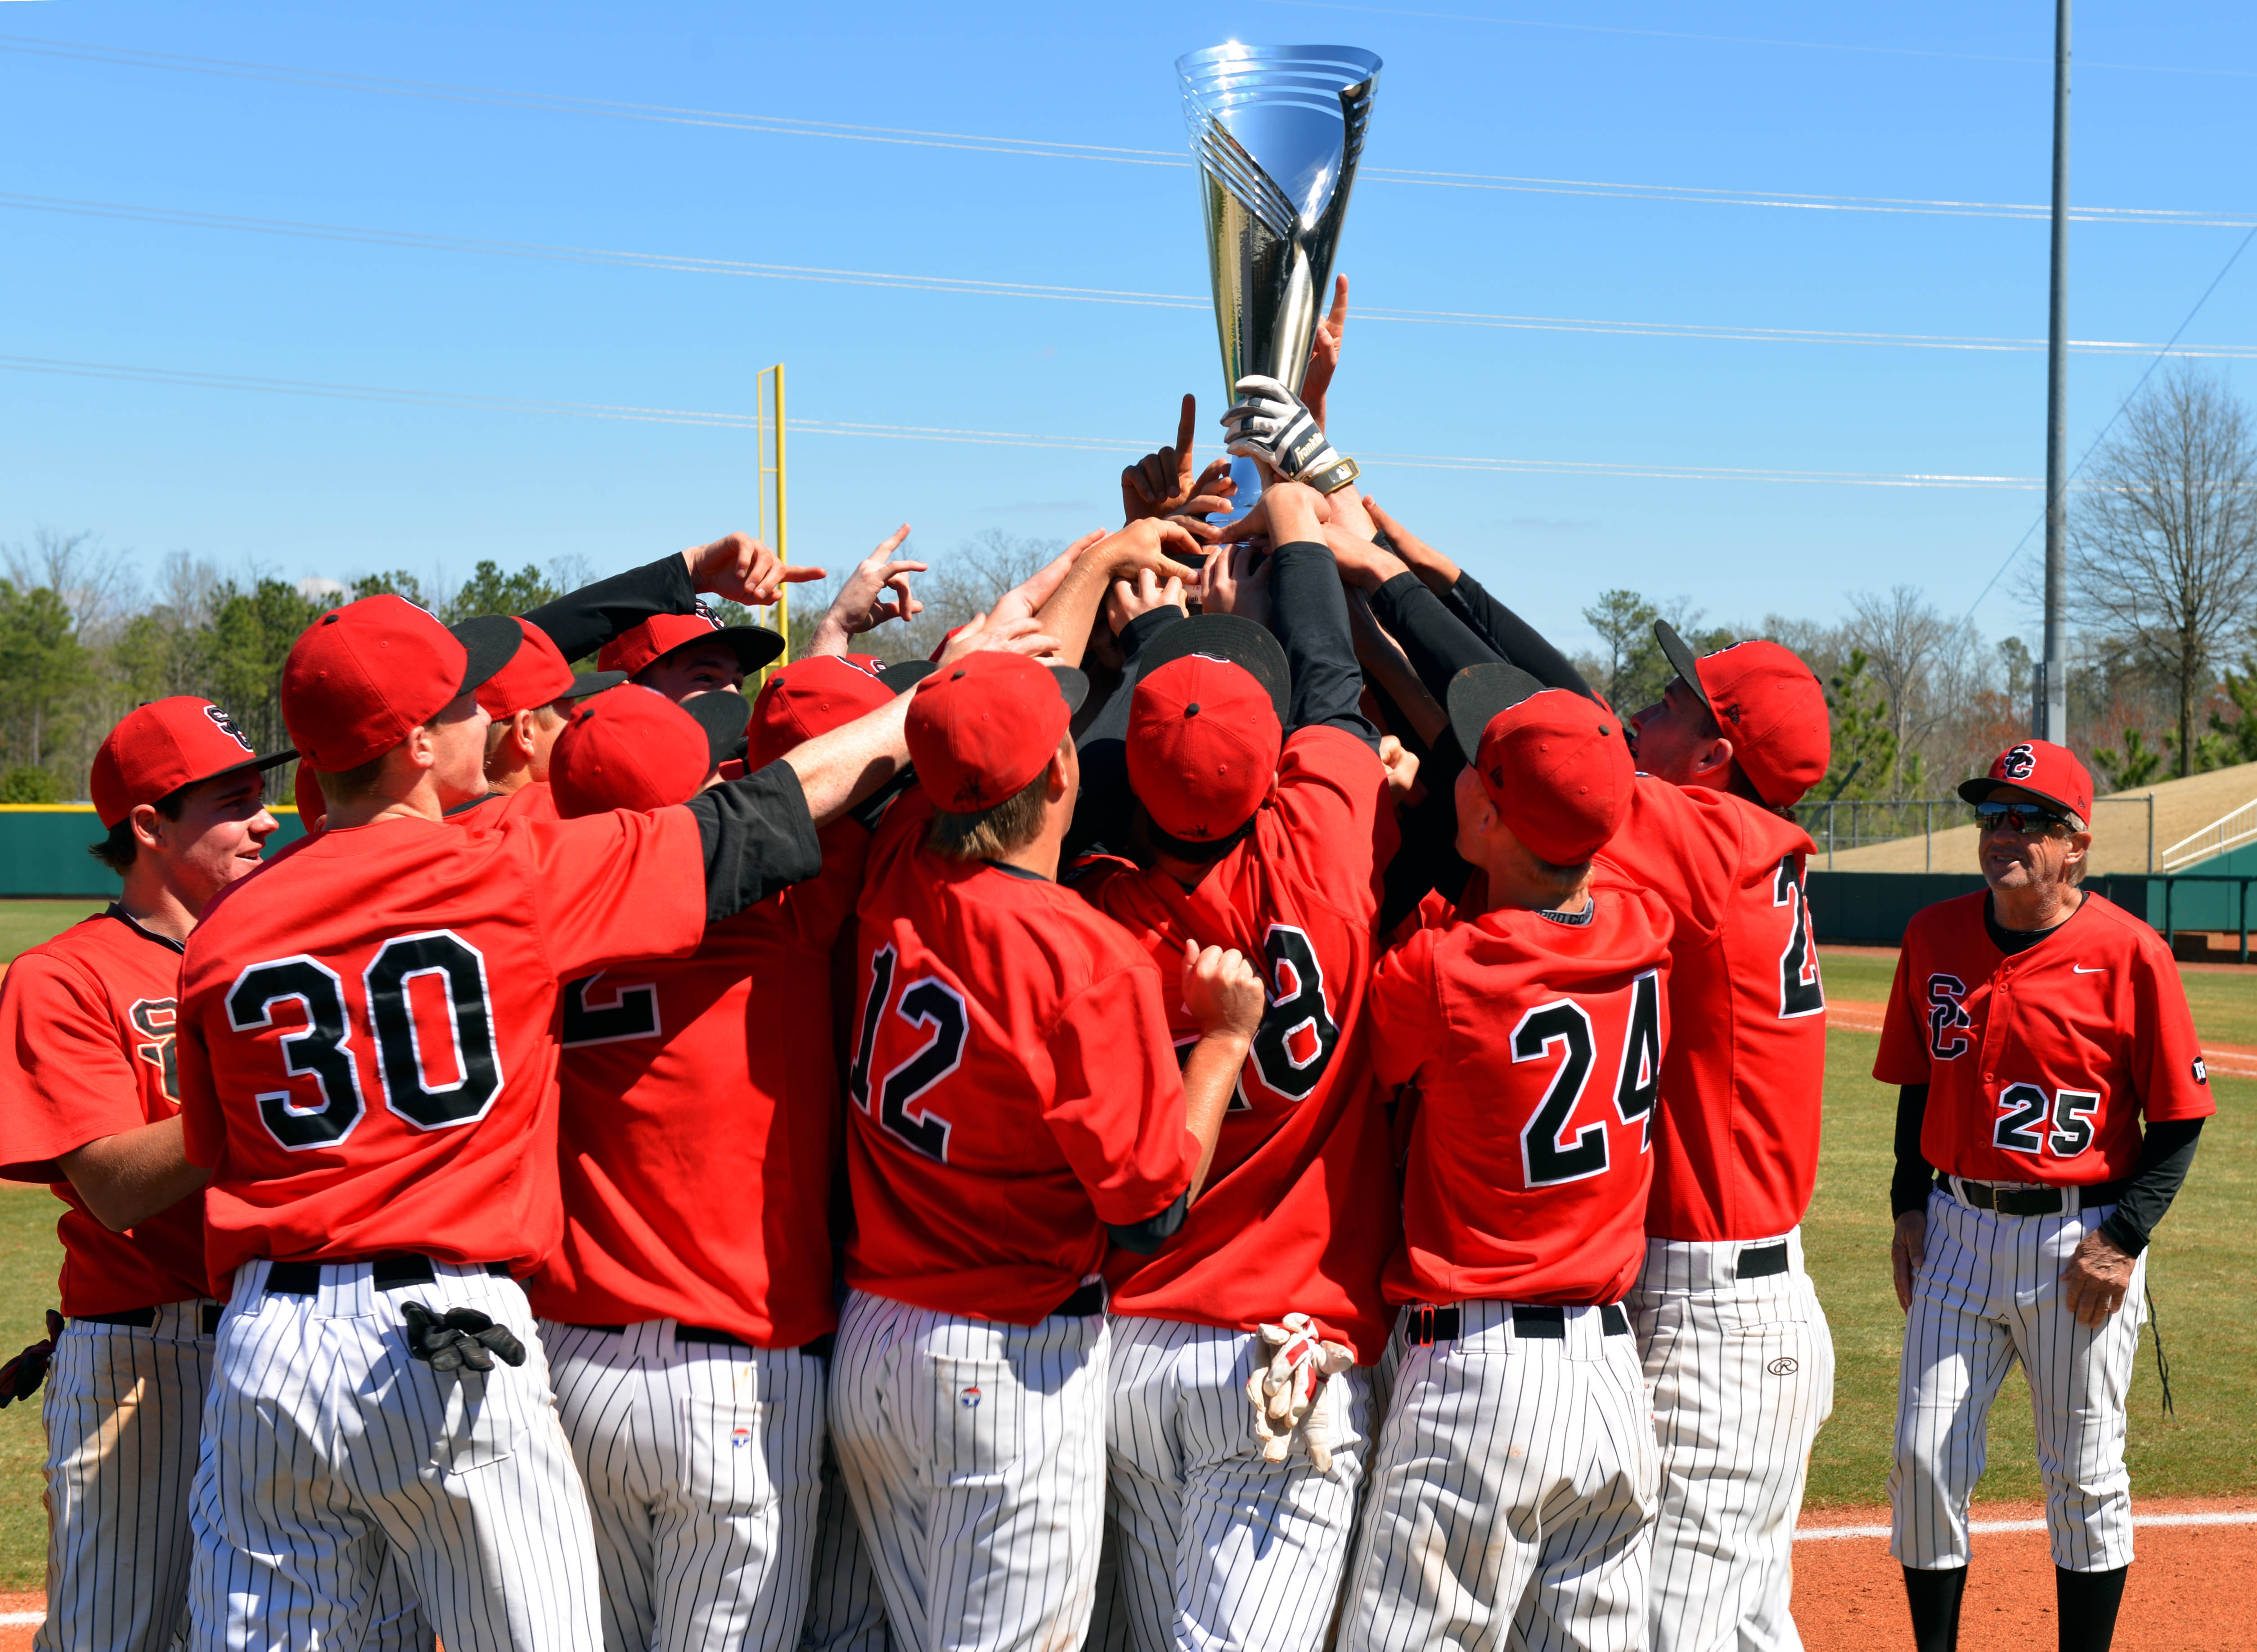 The San Clemente Tritons hold up their trophy after defeating the College Park Falcons to win the National High School Baseball Invitational in 2015 (Photo: Rob Kinnan USA TODAY Sports)